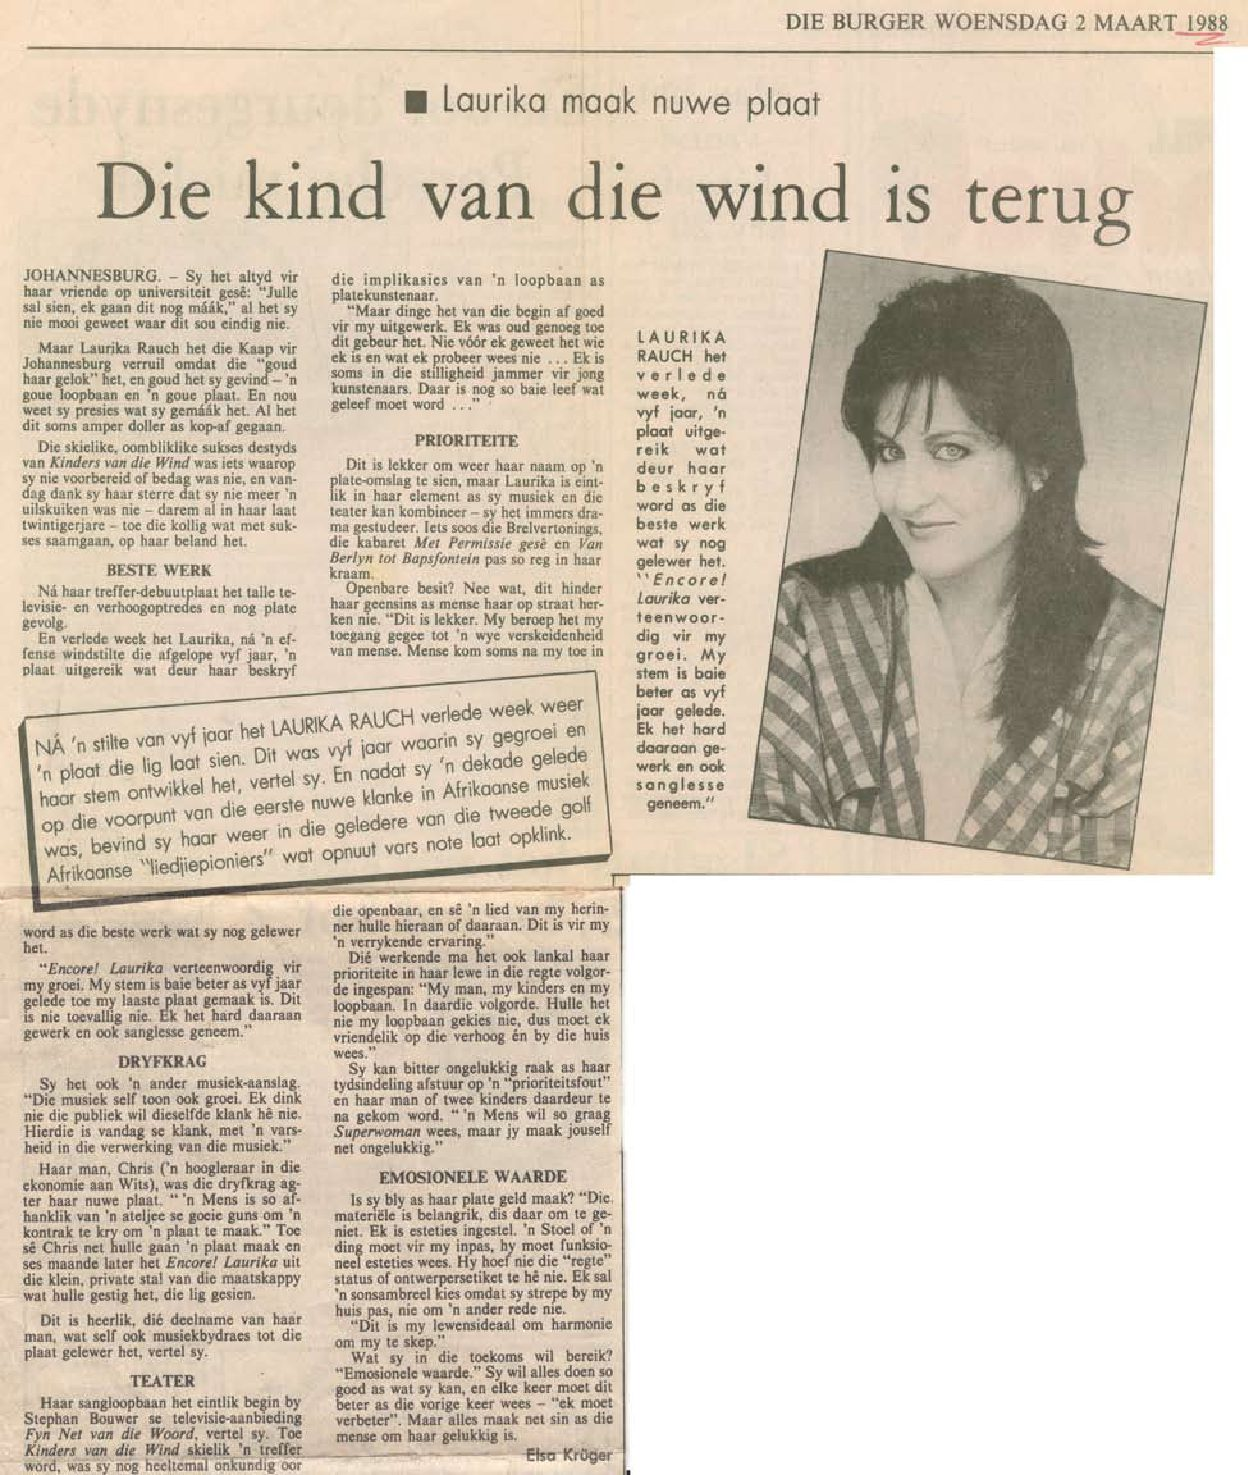 1988-die-burger-die-kind-van-die-wind-is-terug-updated